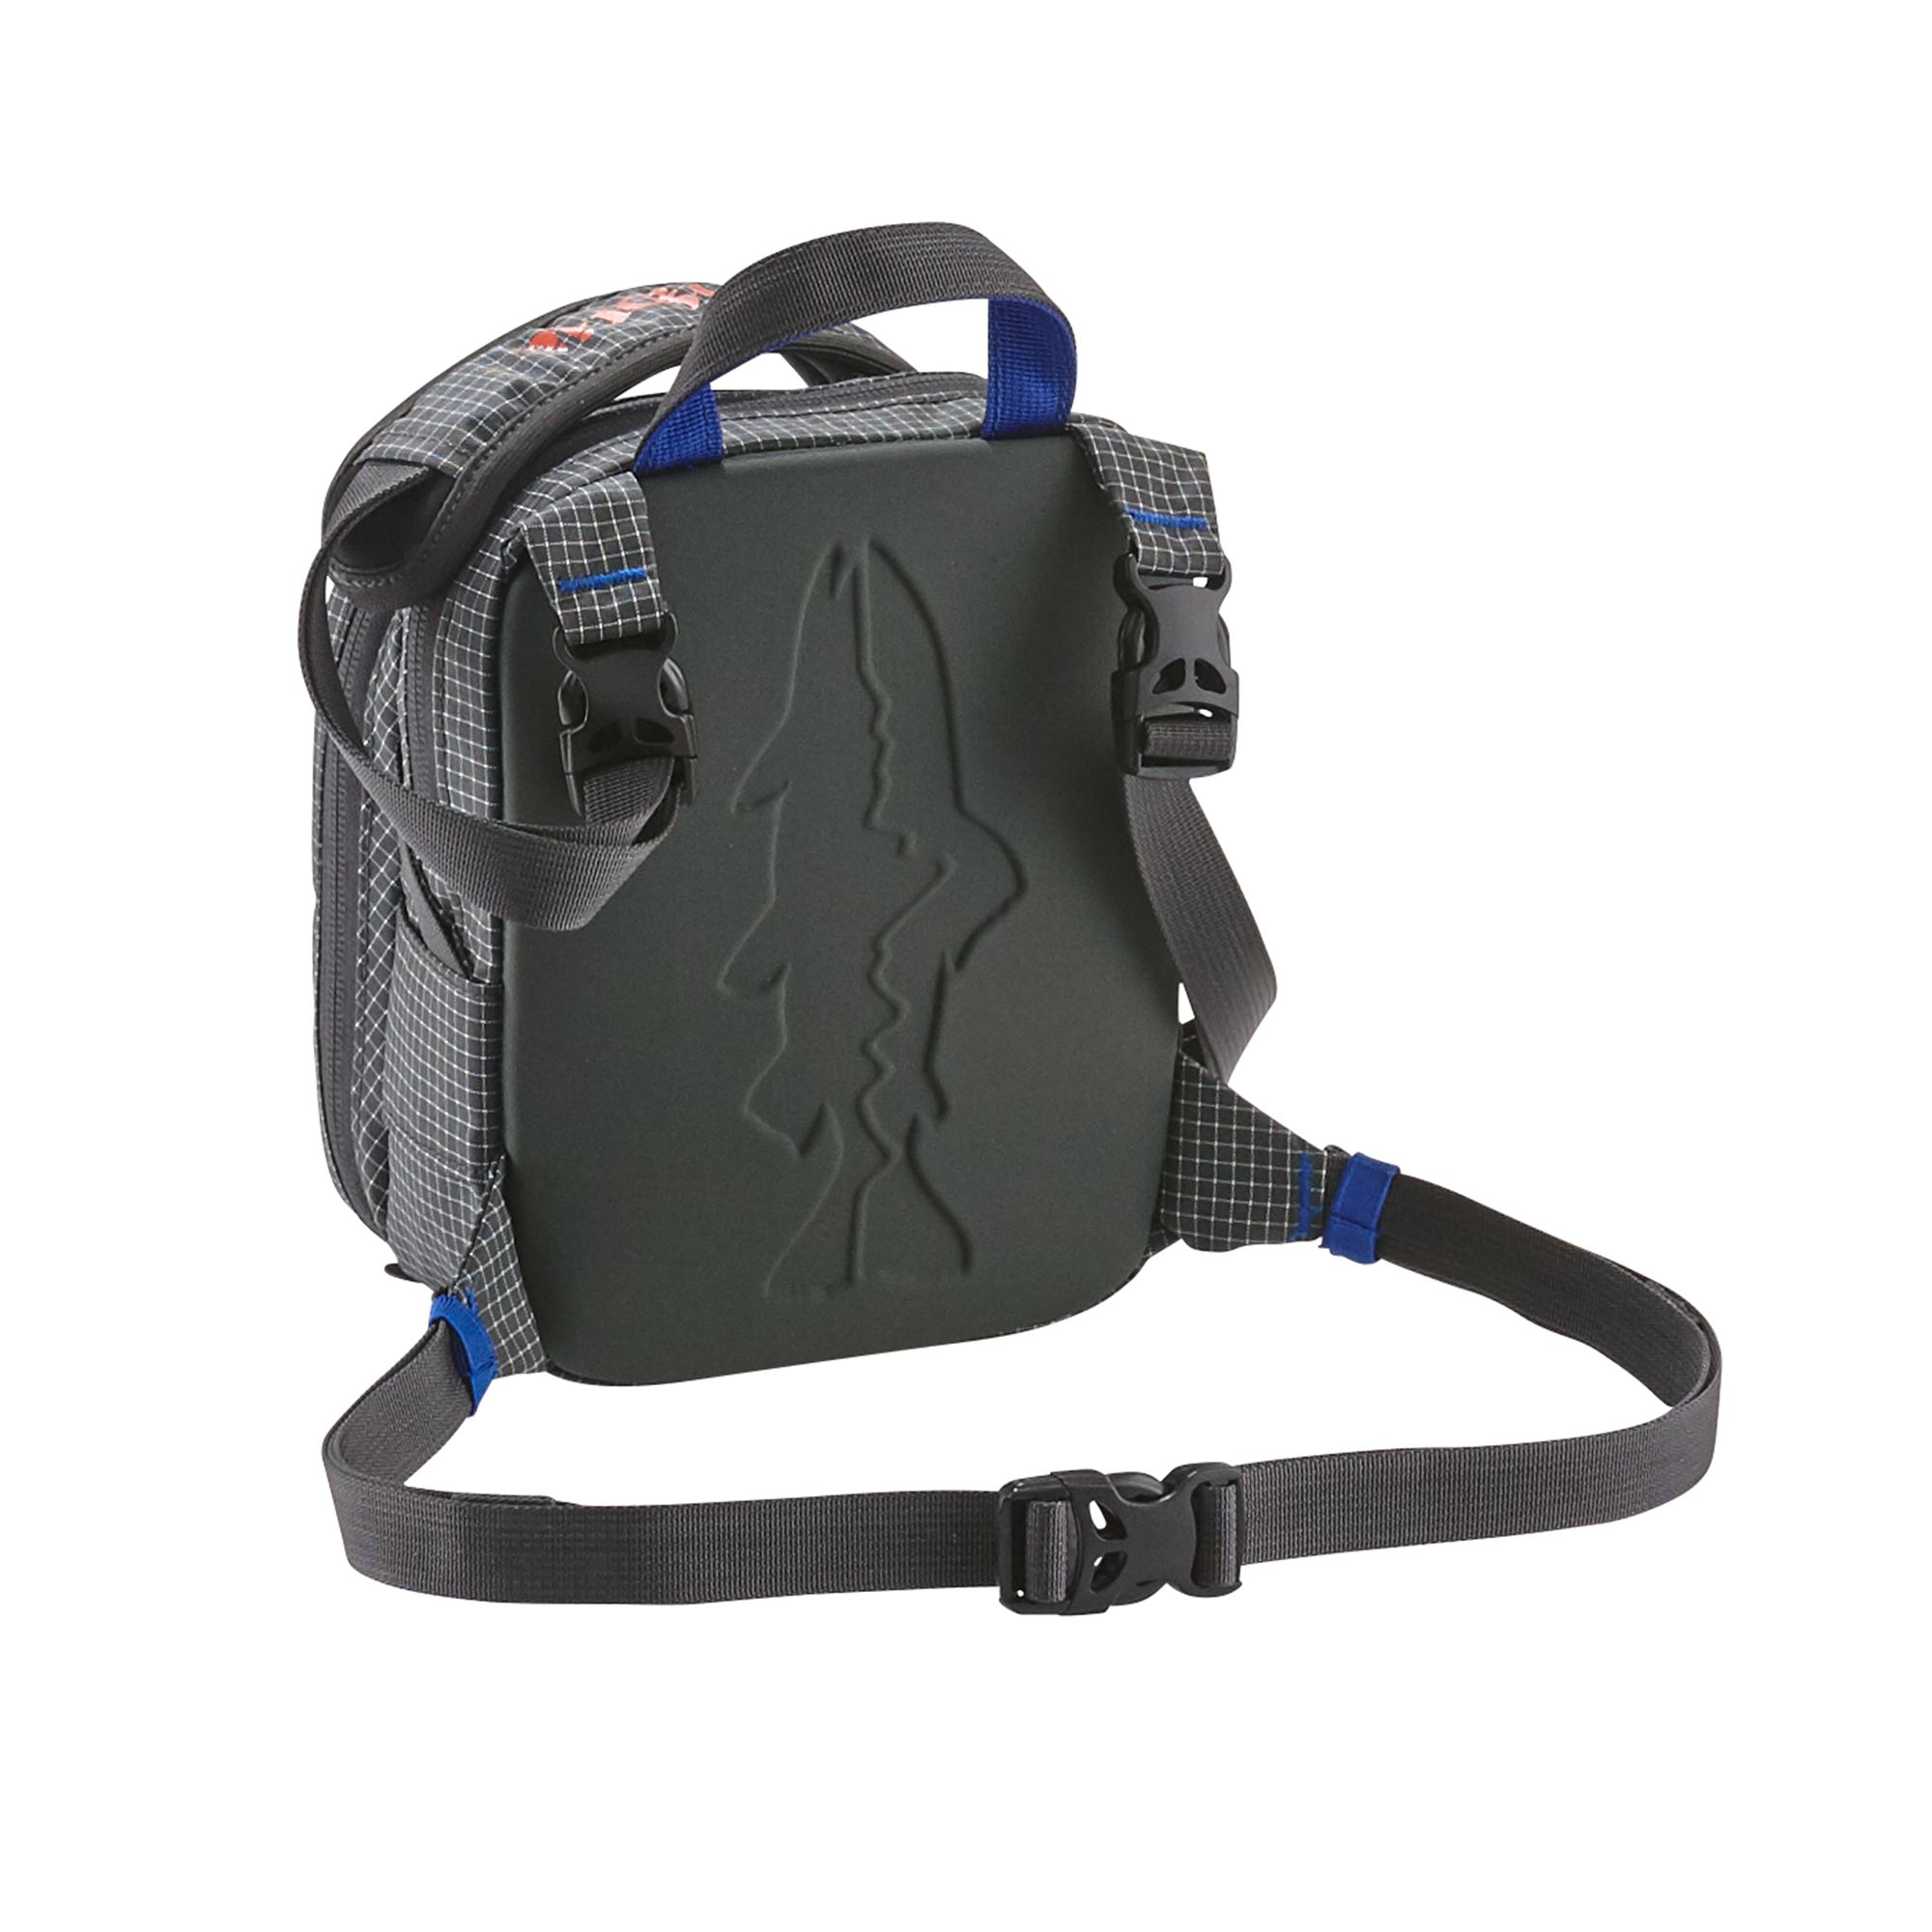 Stealth Chest Pack 4L Patagonia - Back side